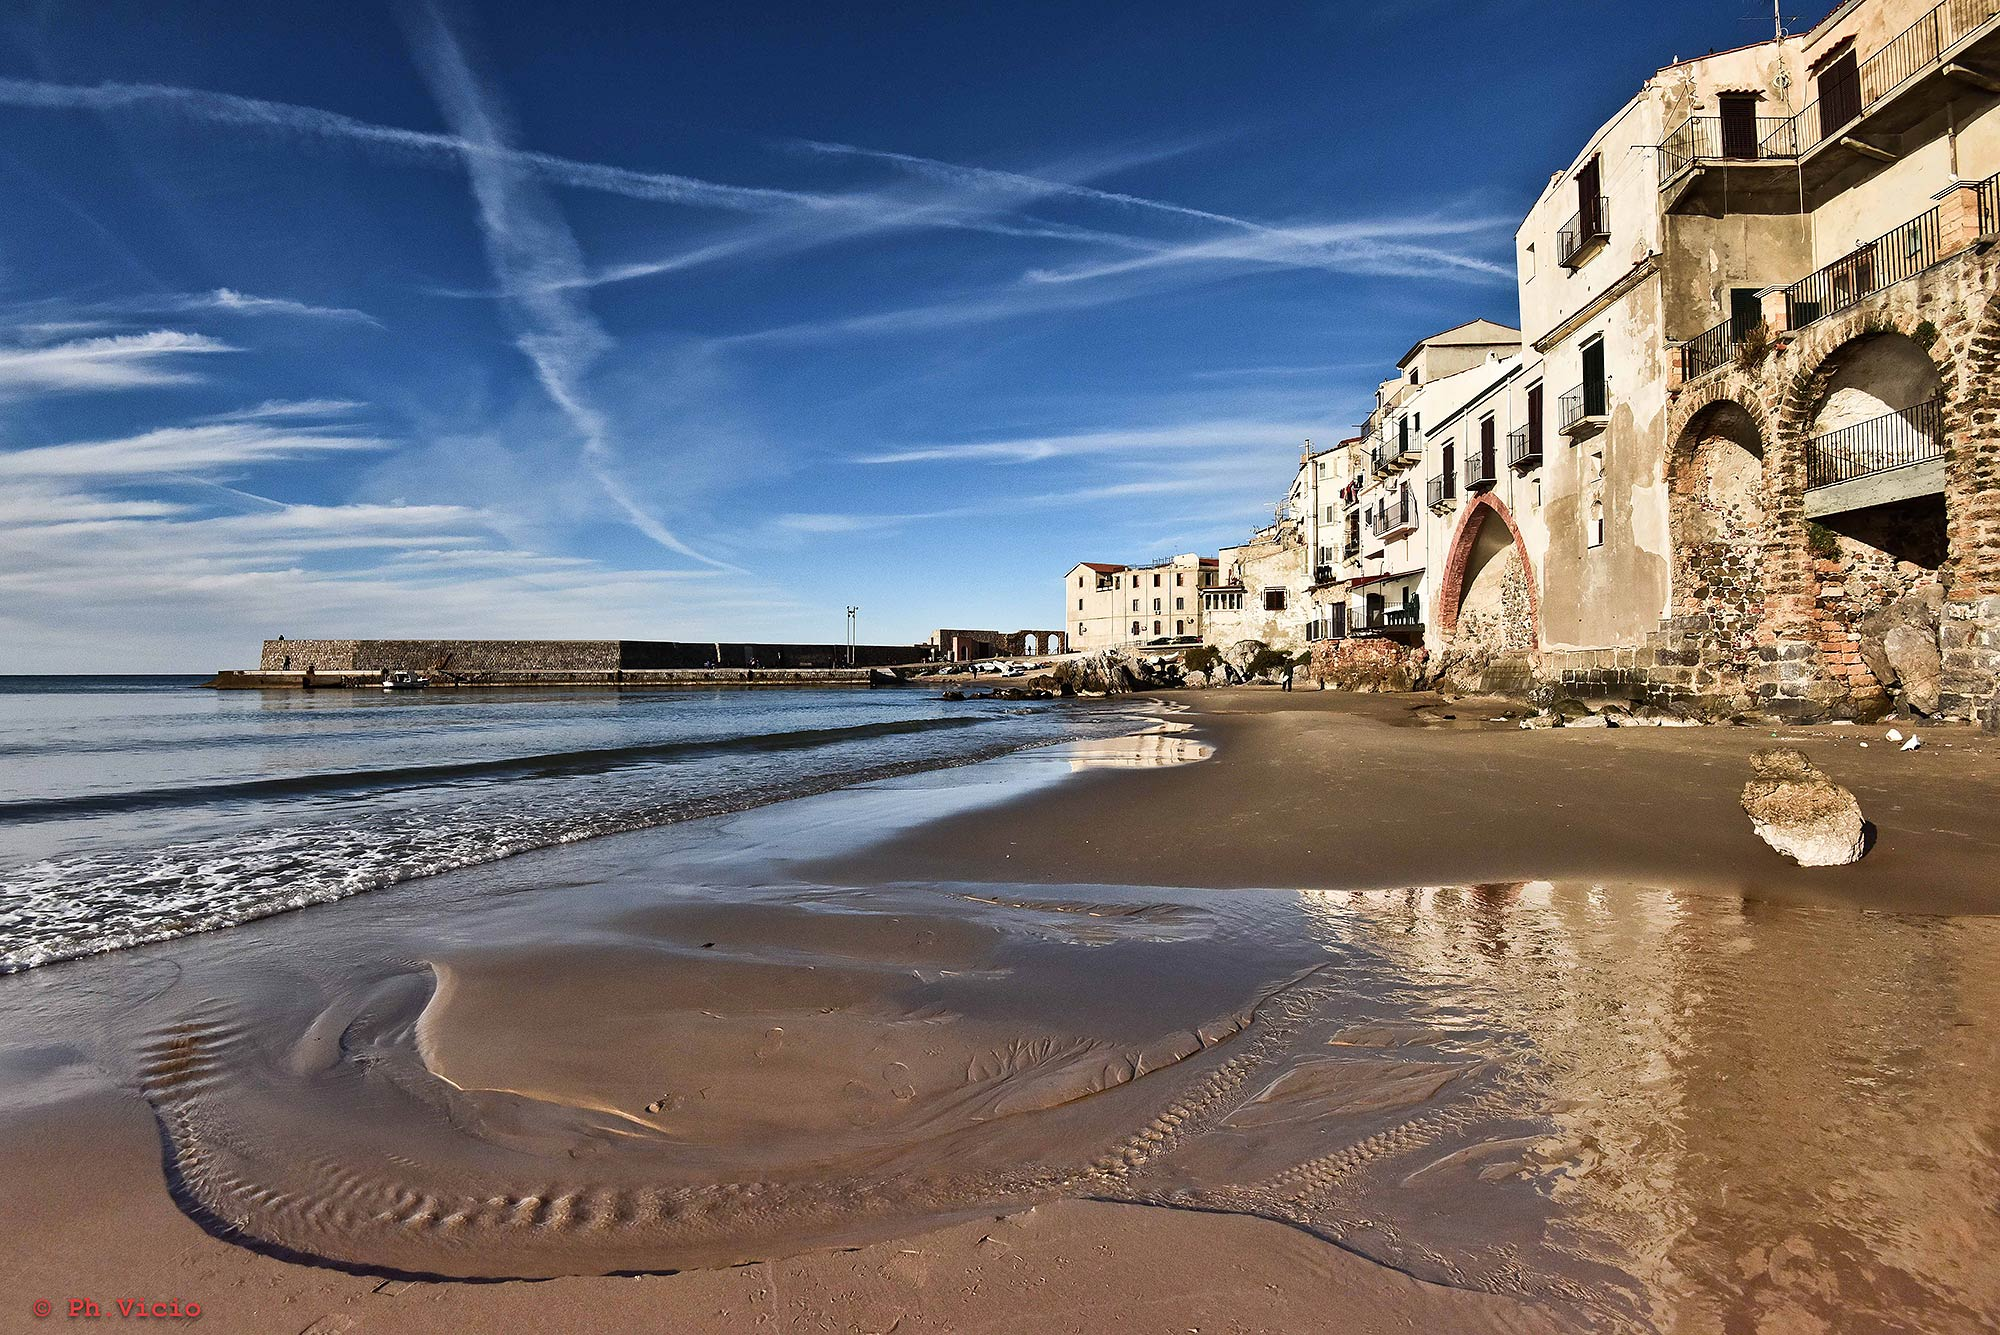 On the beach of the Sicilian coastal town of Cefalù